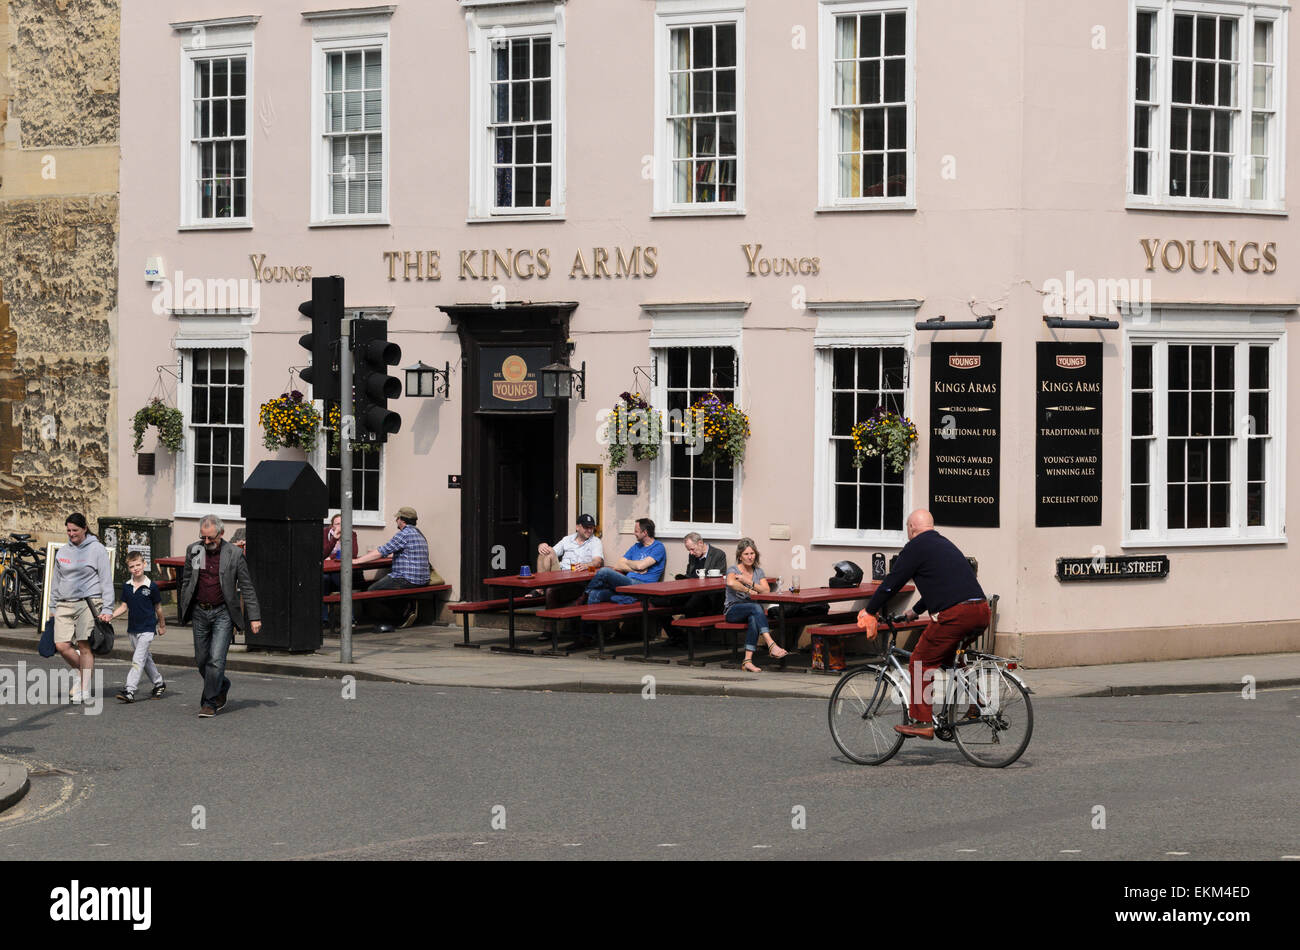 The Kings Arms Pub in the centre of the historic city of Oxford, U.K - Stock Image